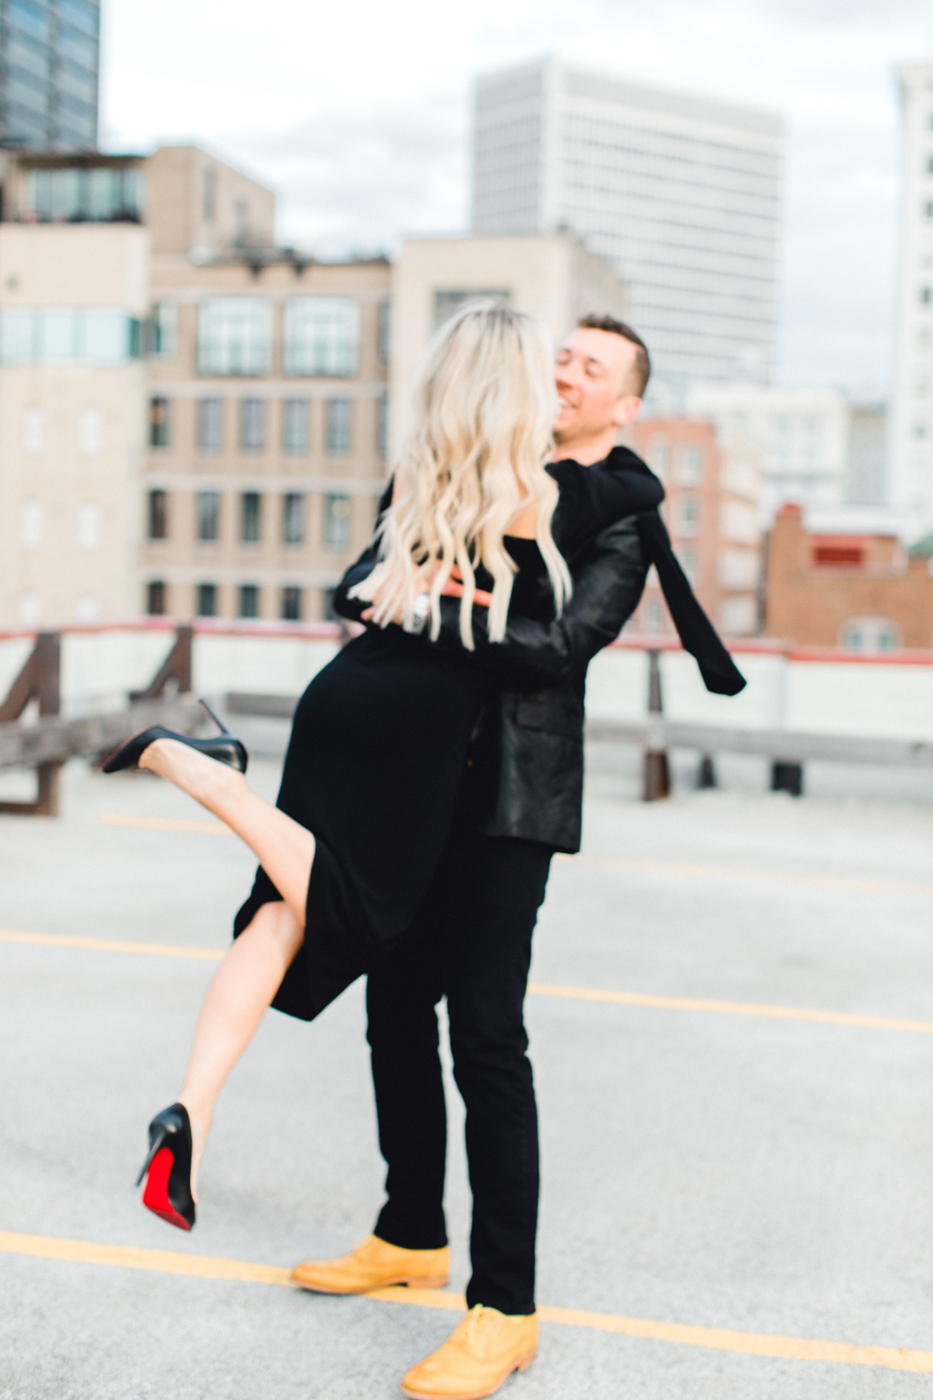 four corners photography best atlanta wedding photographer downtown atlanta engagement session engagement proposal ventanas downtown atlanta wedding atlanta wedding photographer-21.jpg